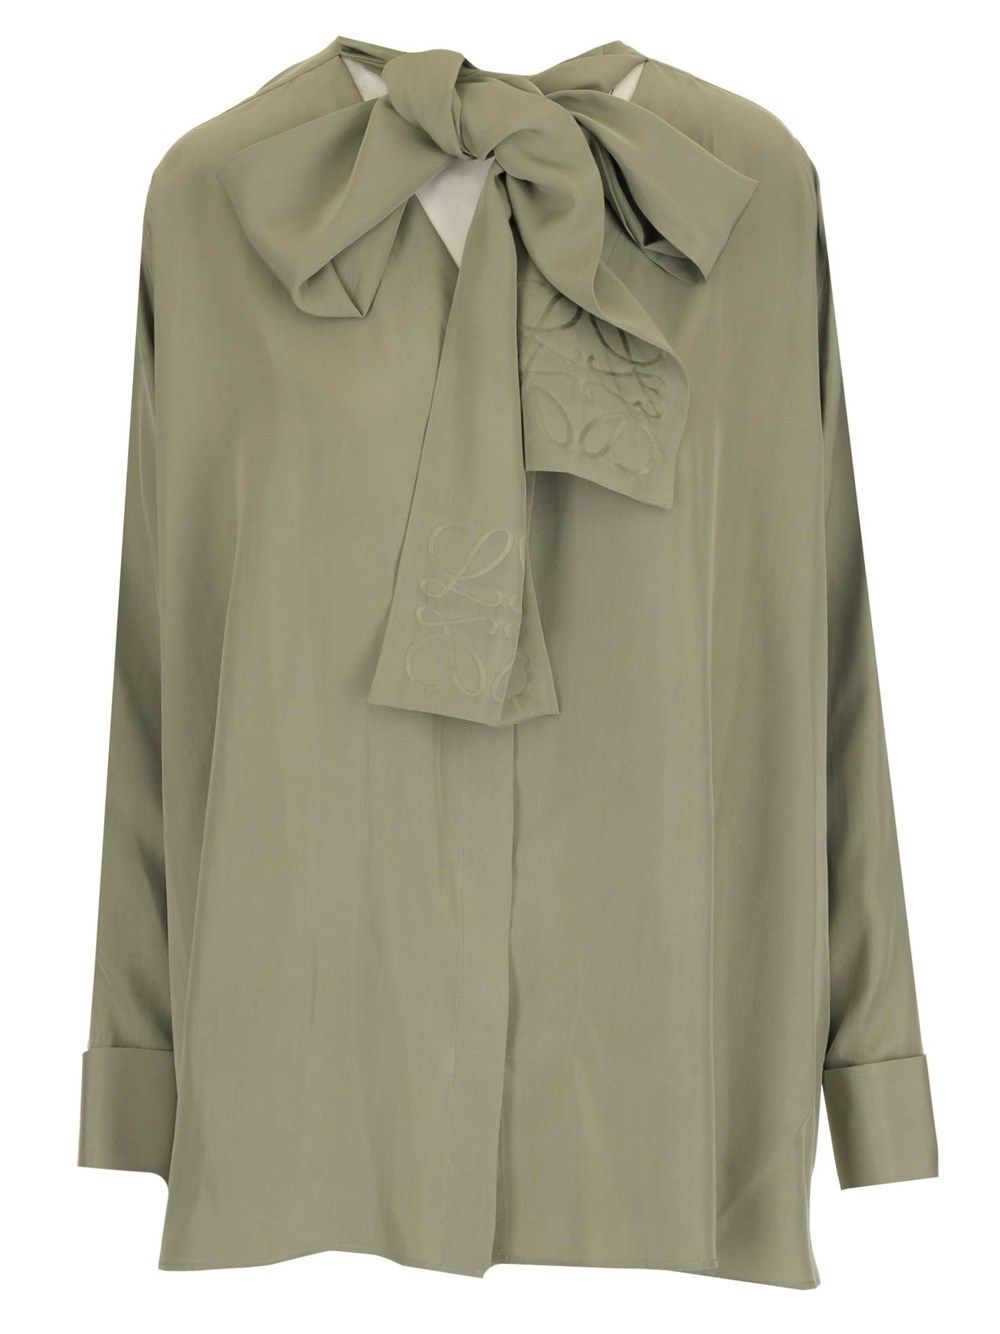 Loewe LOEWE WOMEN'S S359337XCR4380 GREEN OTHER MATERIALS BLOUSE